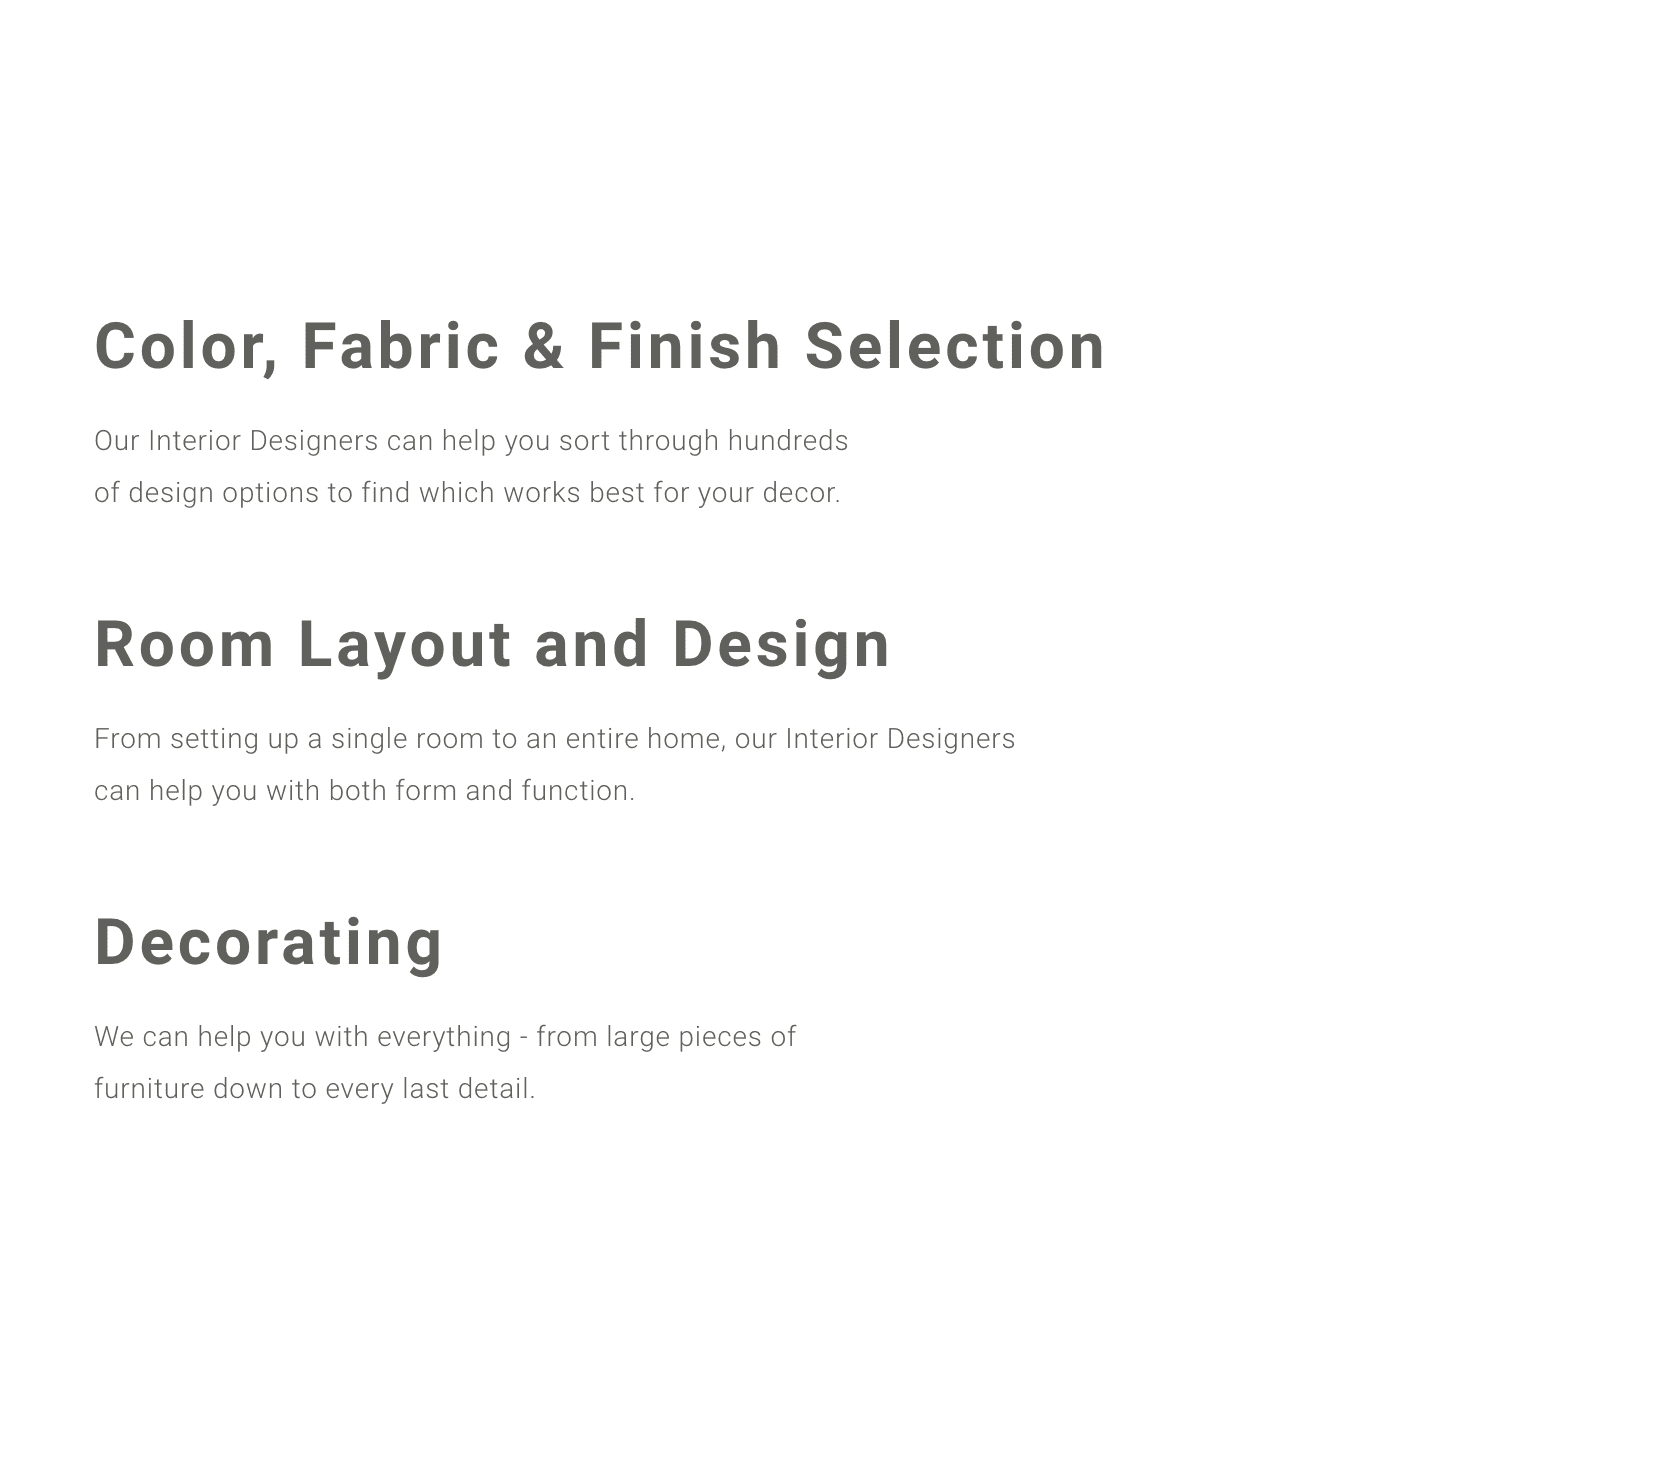 We can help with selections, layout, and design